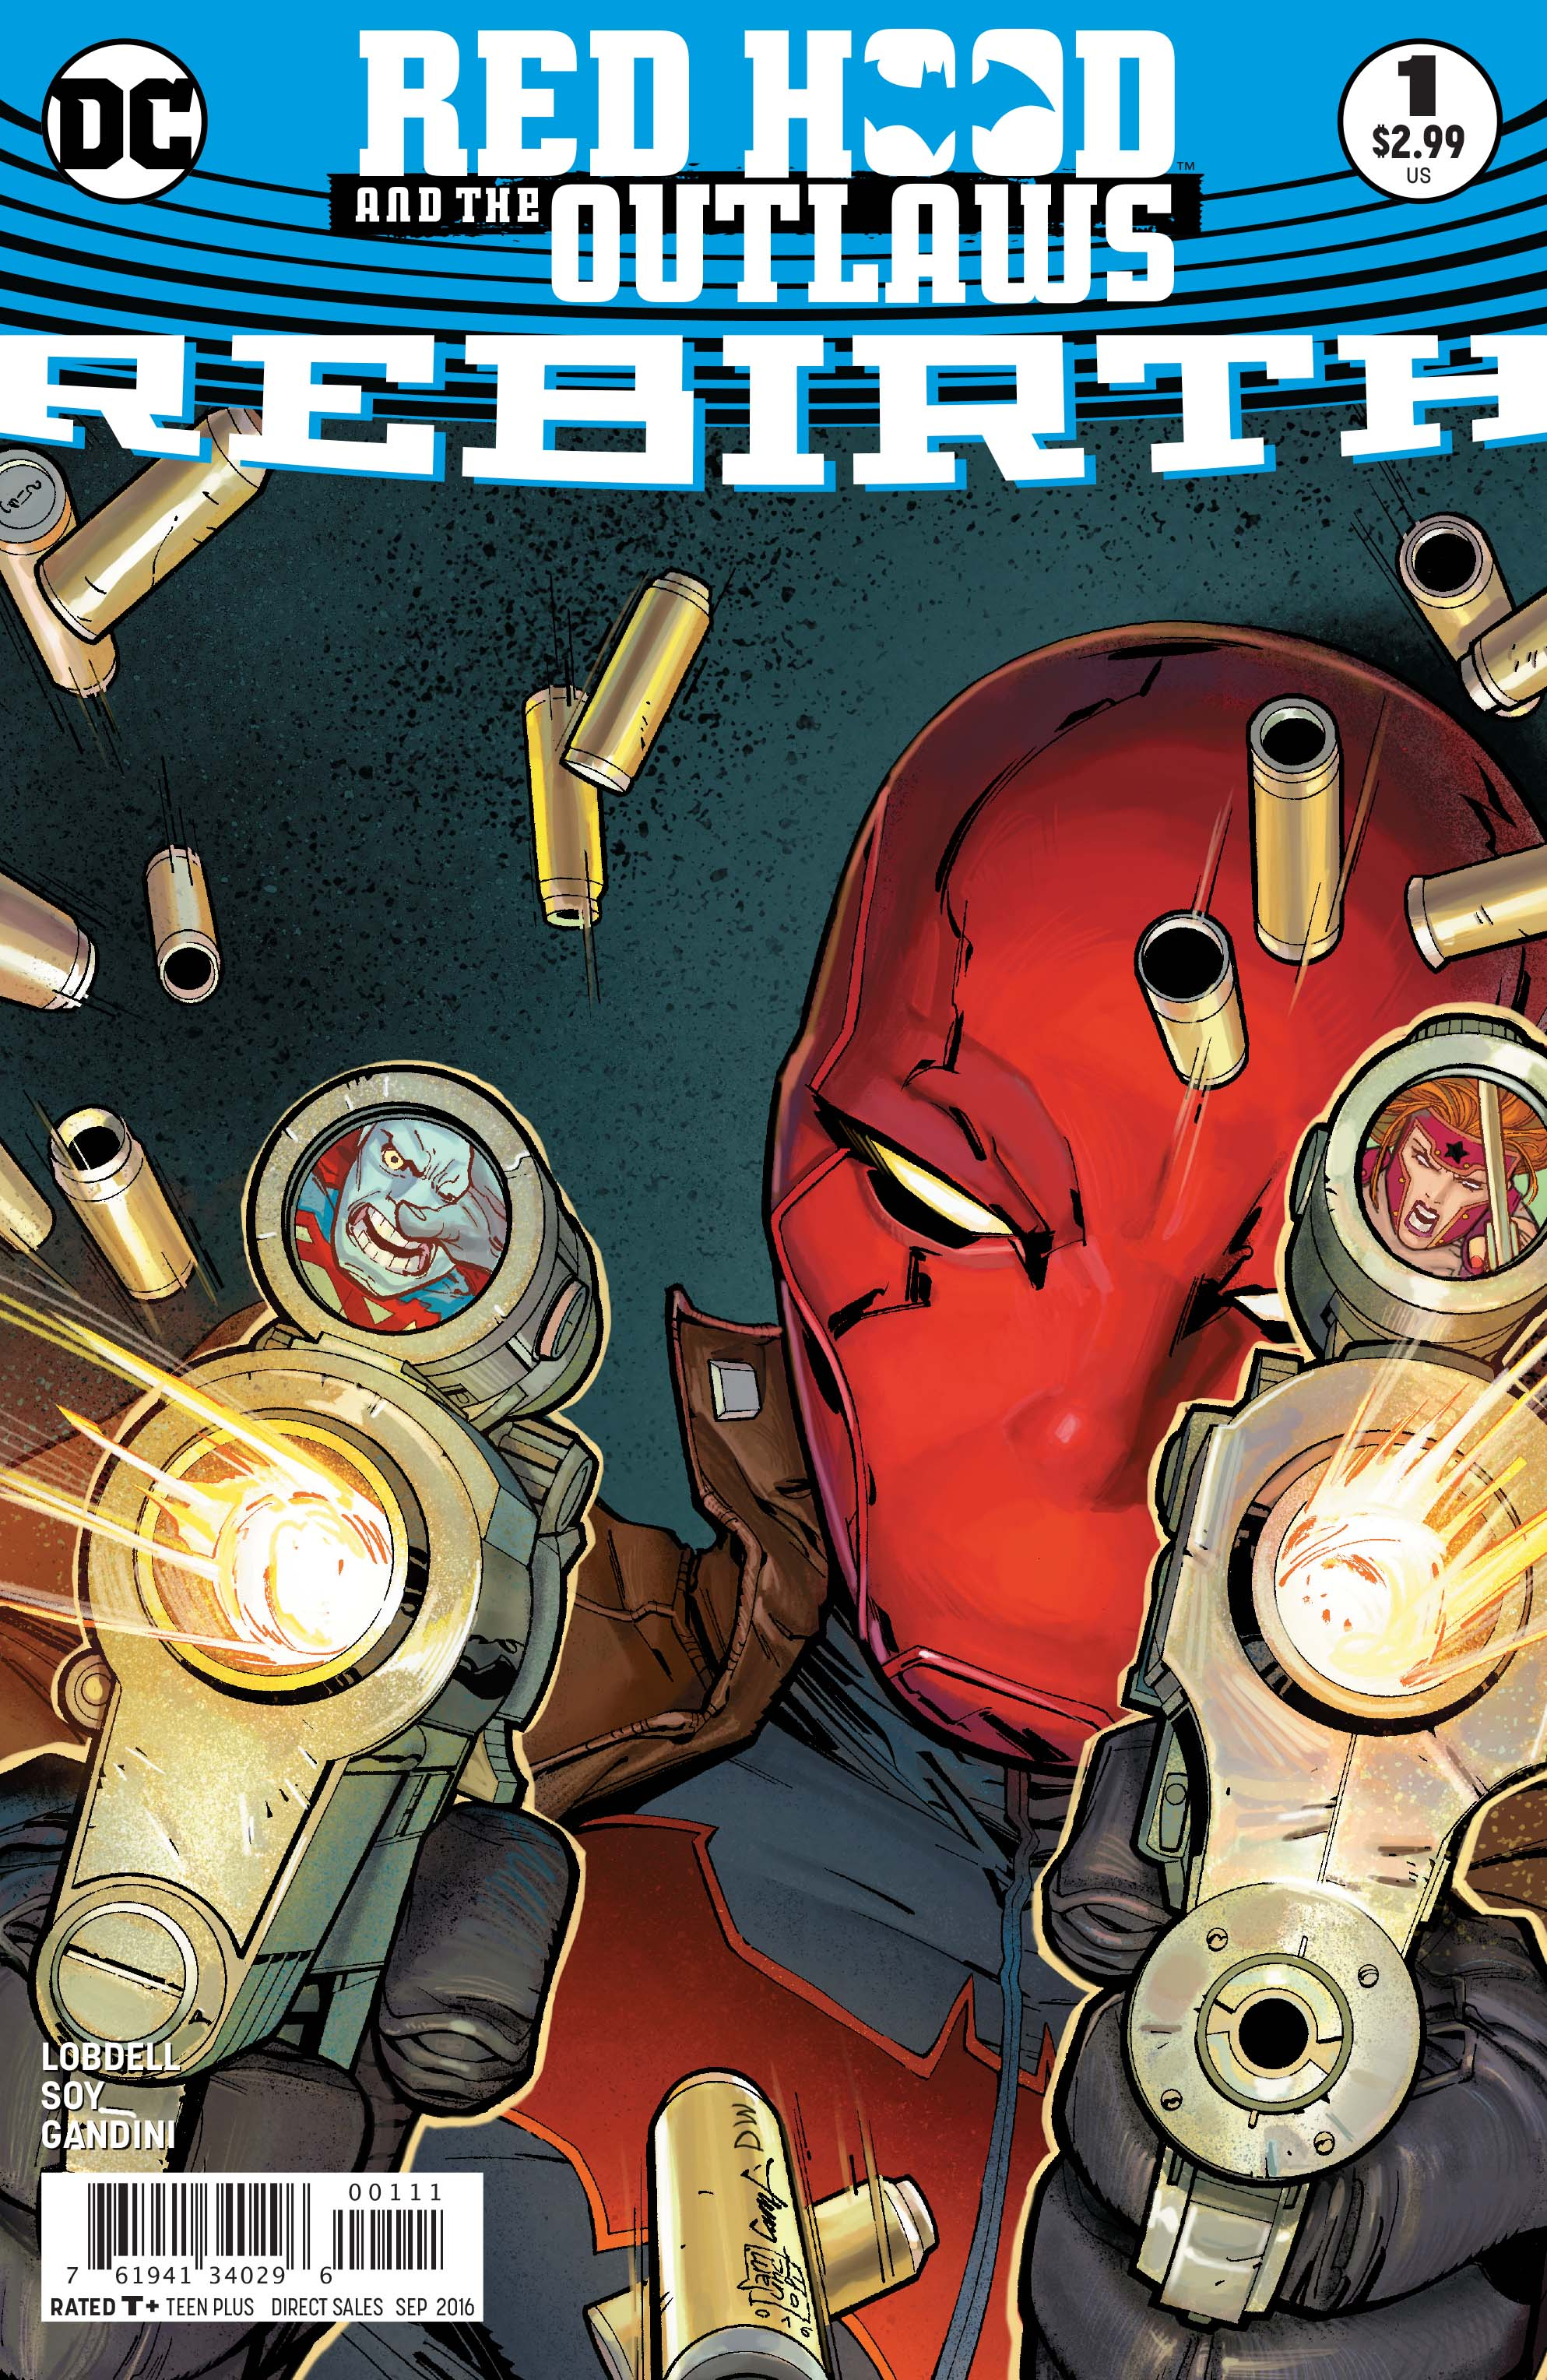 DC Preview: Red Hood and the Outlaws: Rebirth #1